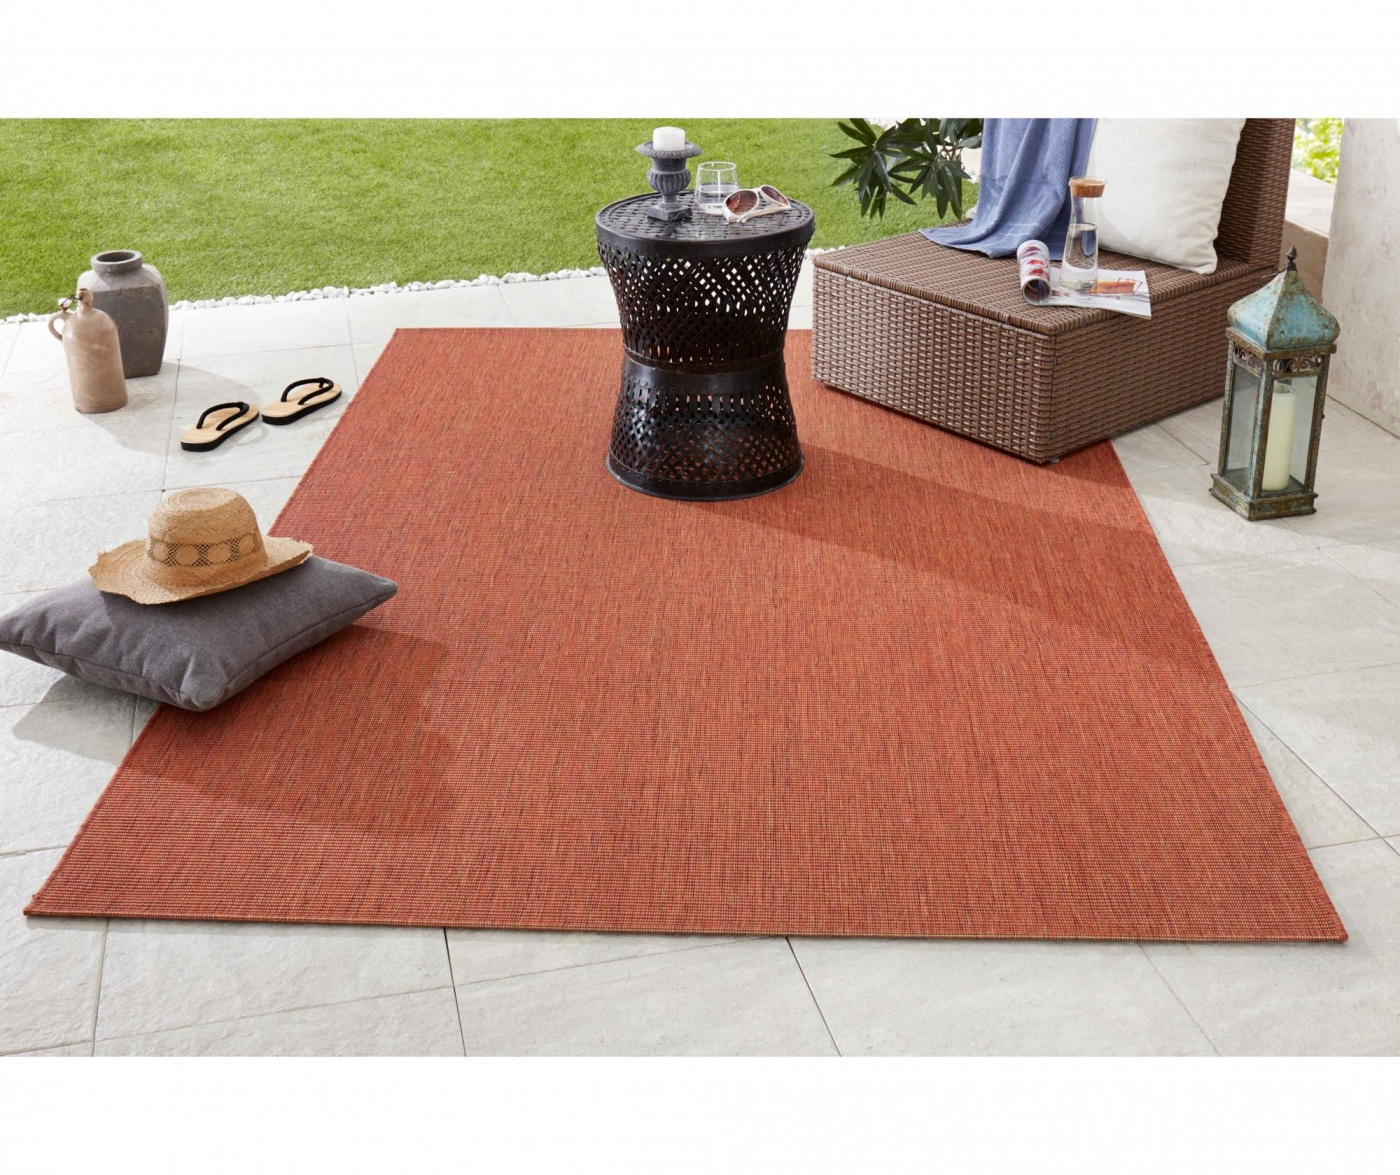 Covor de exterior Meadow Match Terracotta 160x230 cm